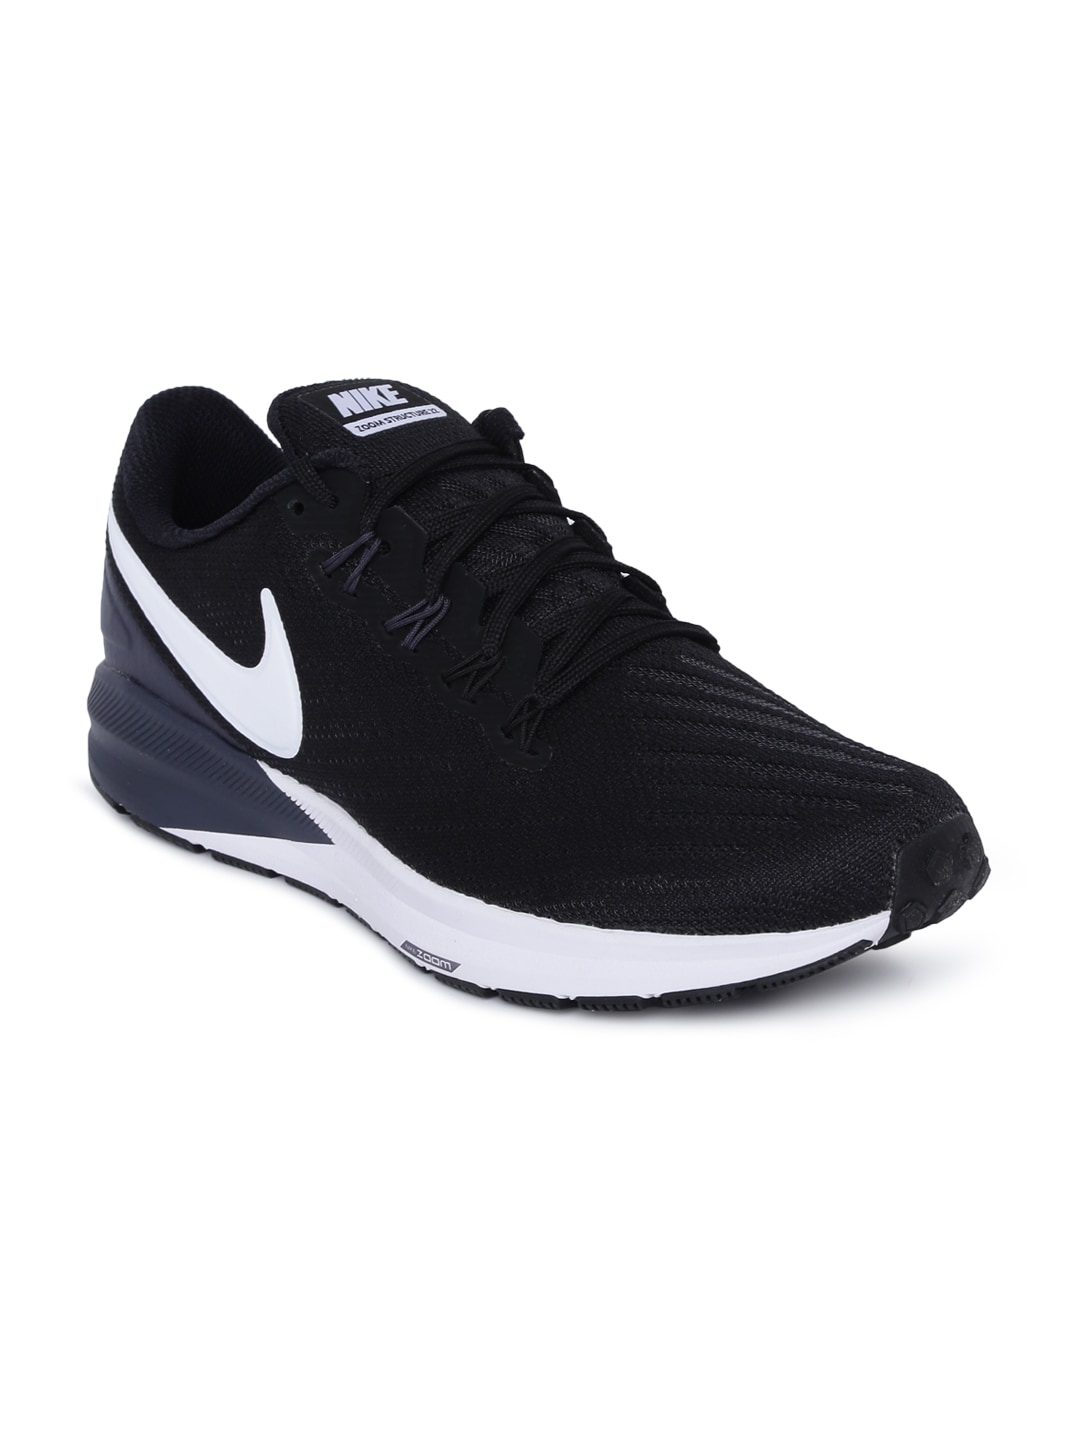 buy popular 89915 6da2e Nike Running Shoes - Buy Nike Running Shoes Online   Myntra